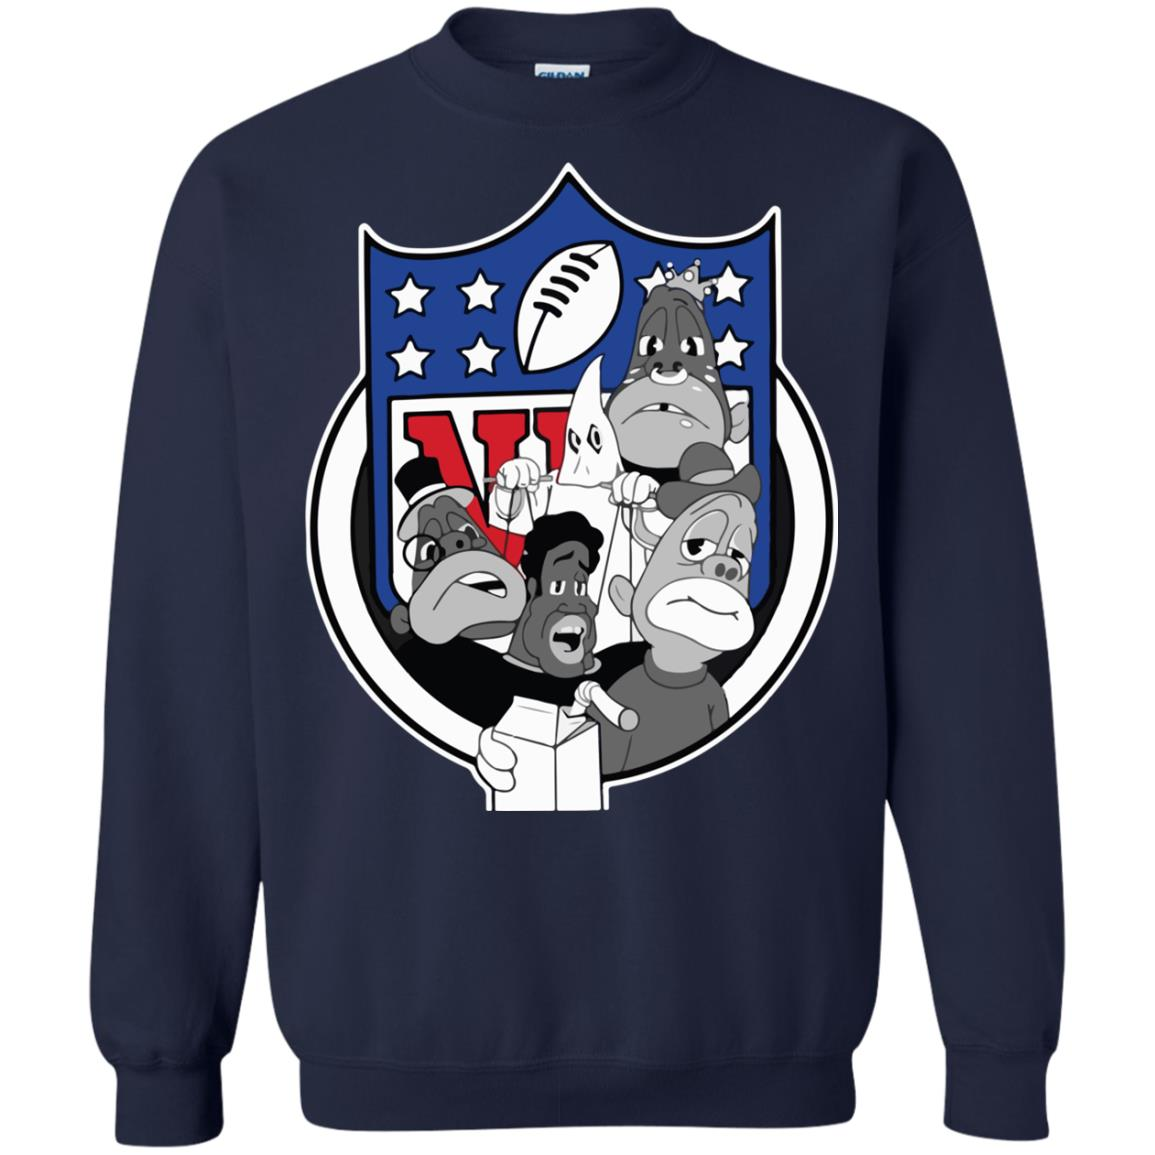 image 1493 - Snoop Dog The Story of O.J NFL shirt & sweatshirt